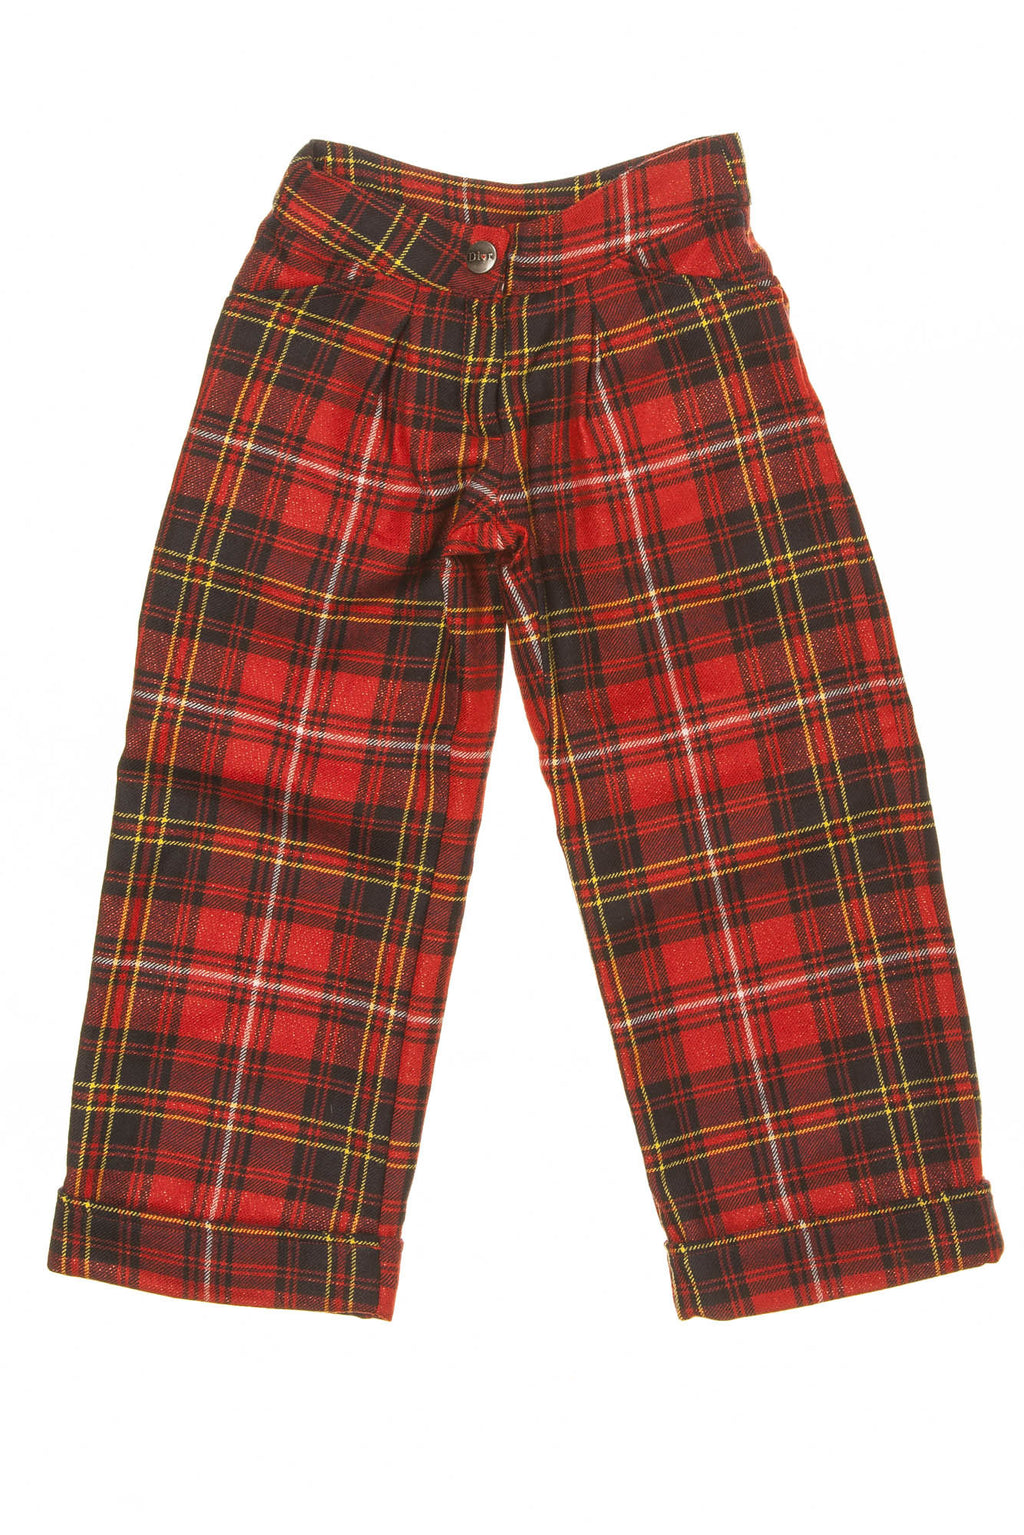 Christian Dior - Red Plaid Pants - 4A